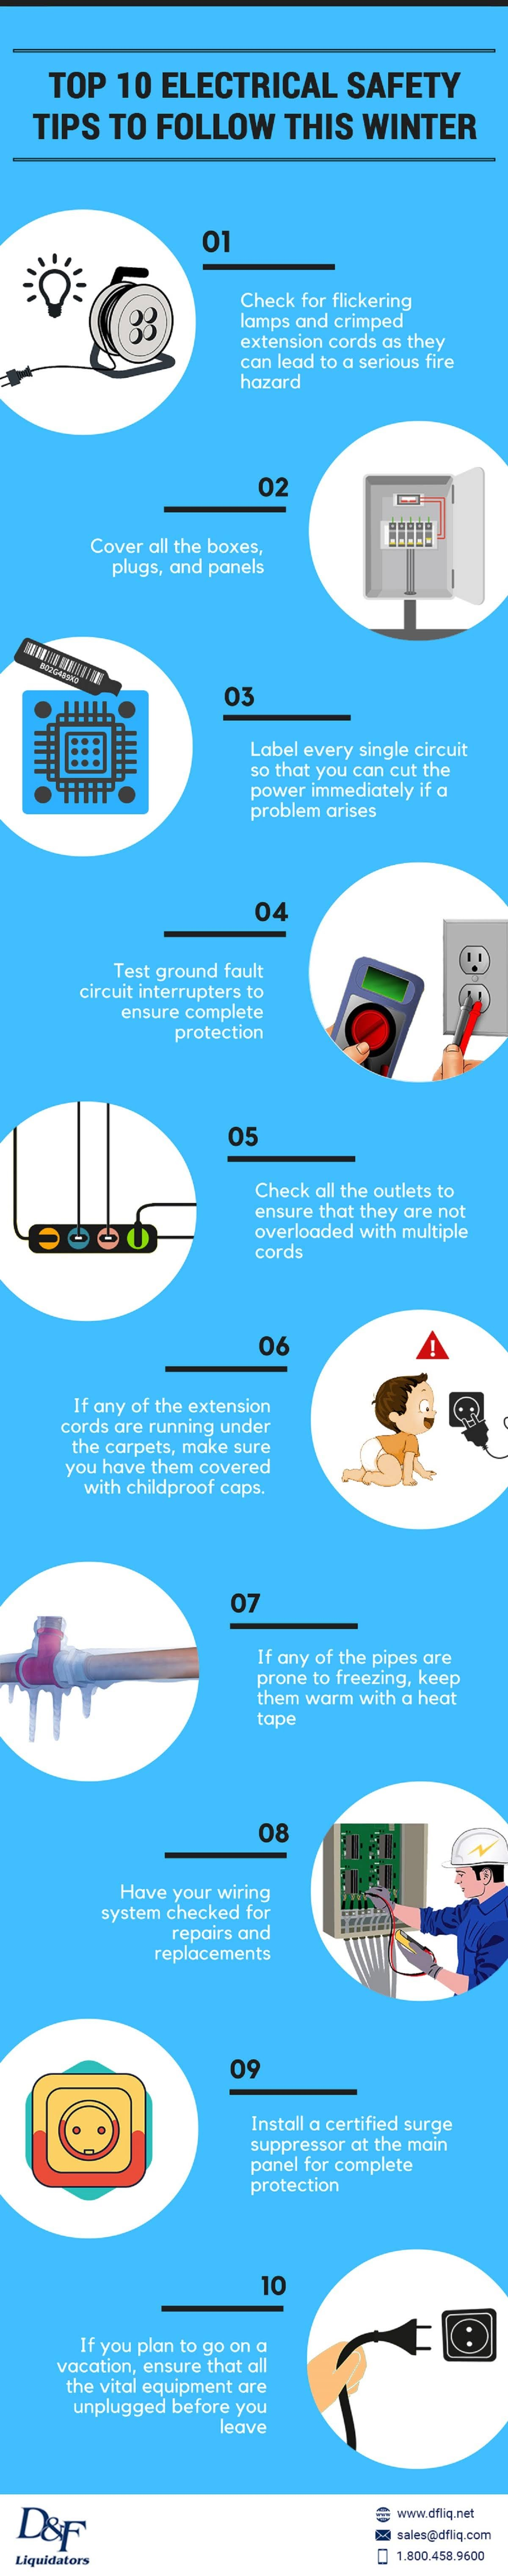 top-10-electrical-safety-tips-to-follow-this-winter-infographic